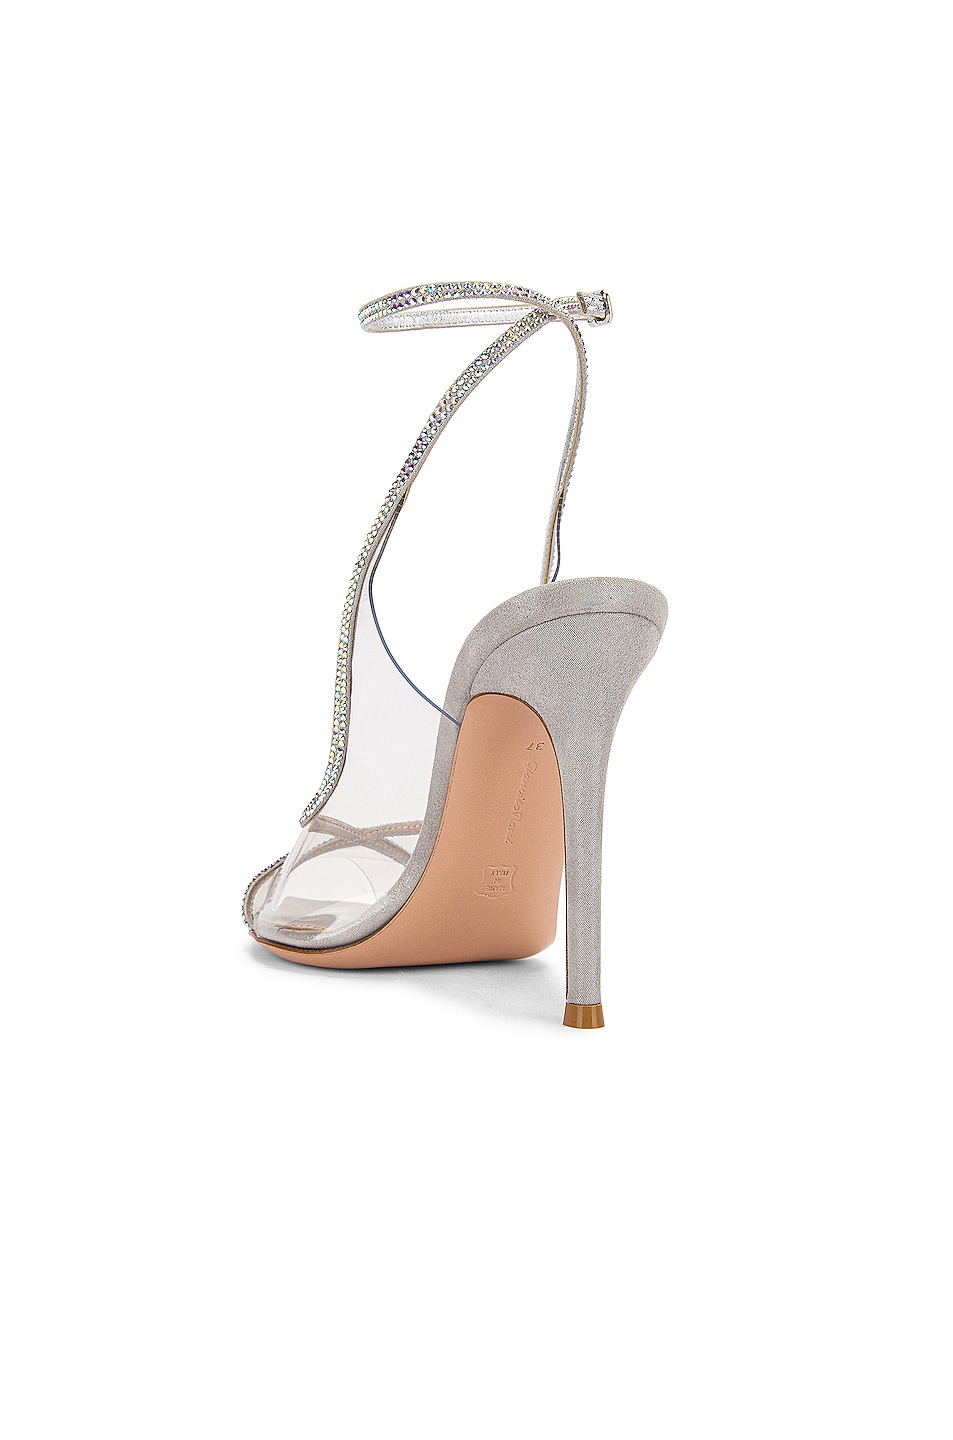 Image 3 of Gianvito Rossi Ankle Strap Heels in Transparent & Silver